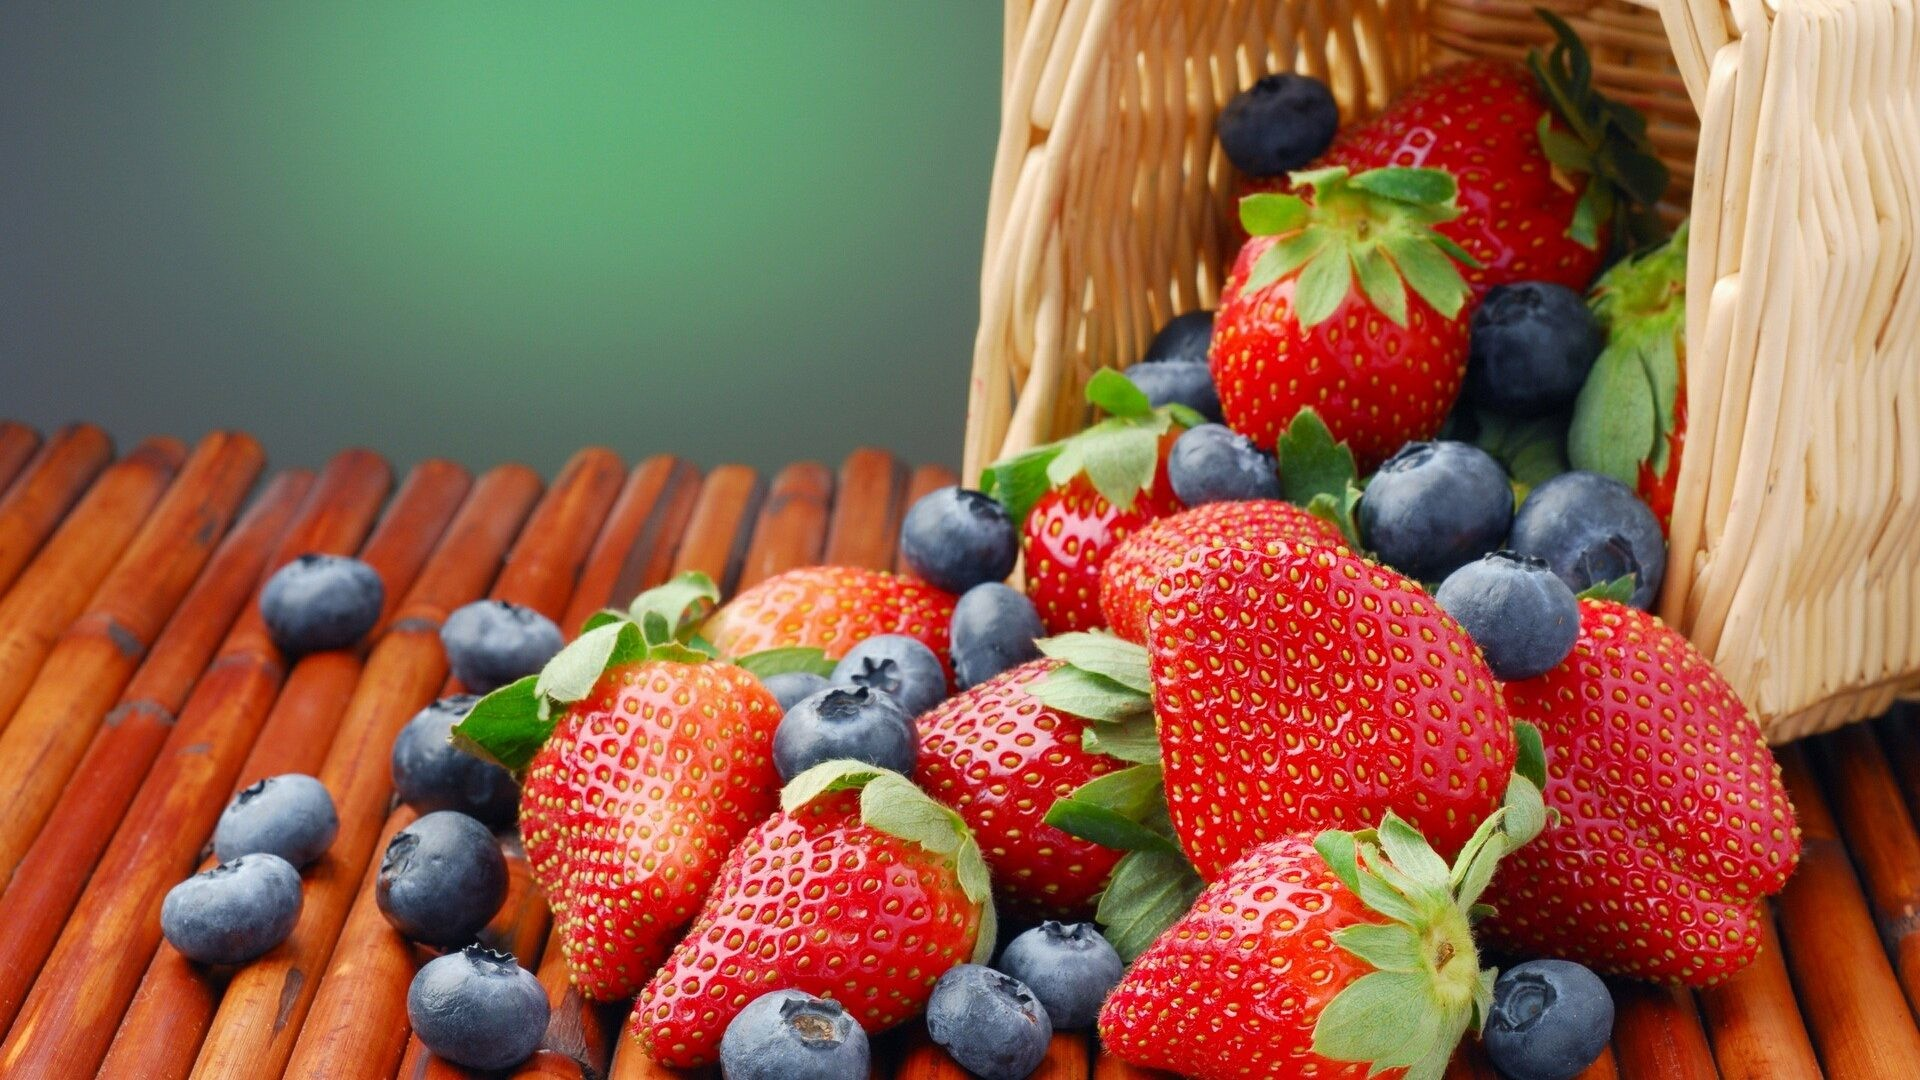 Fruit Basket Strawberries Nature Blueberries Fruits Free Desktop Background  – 1920×1200